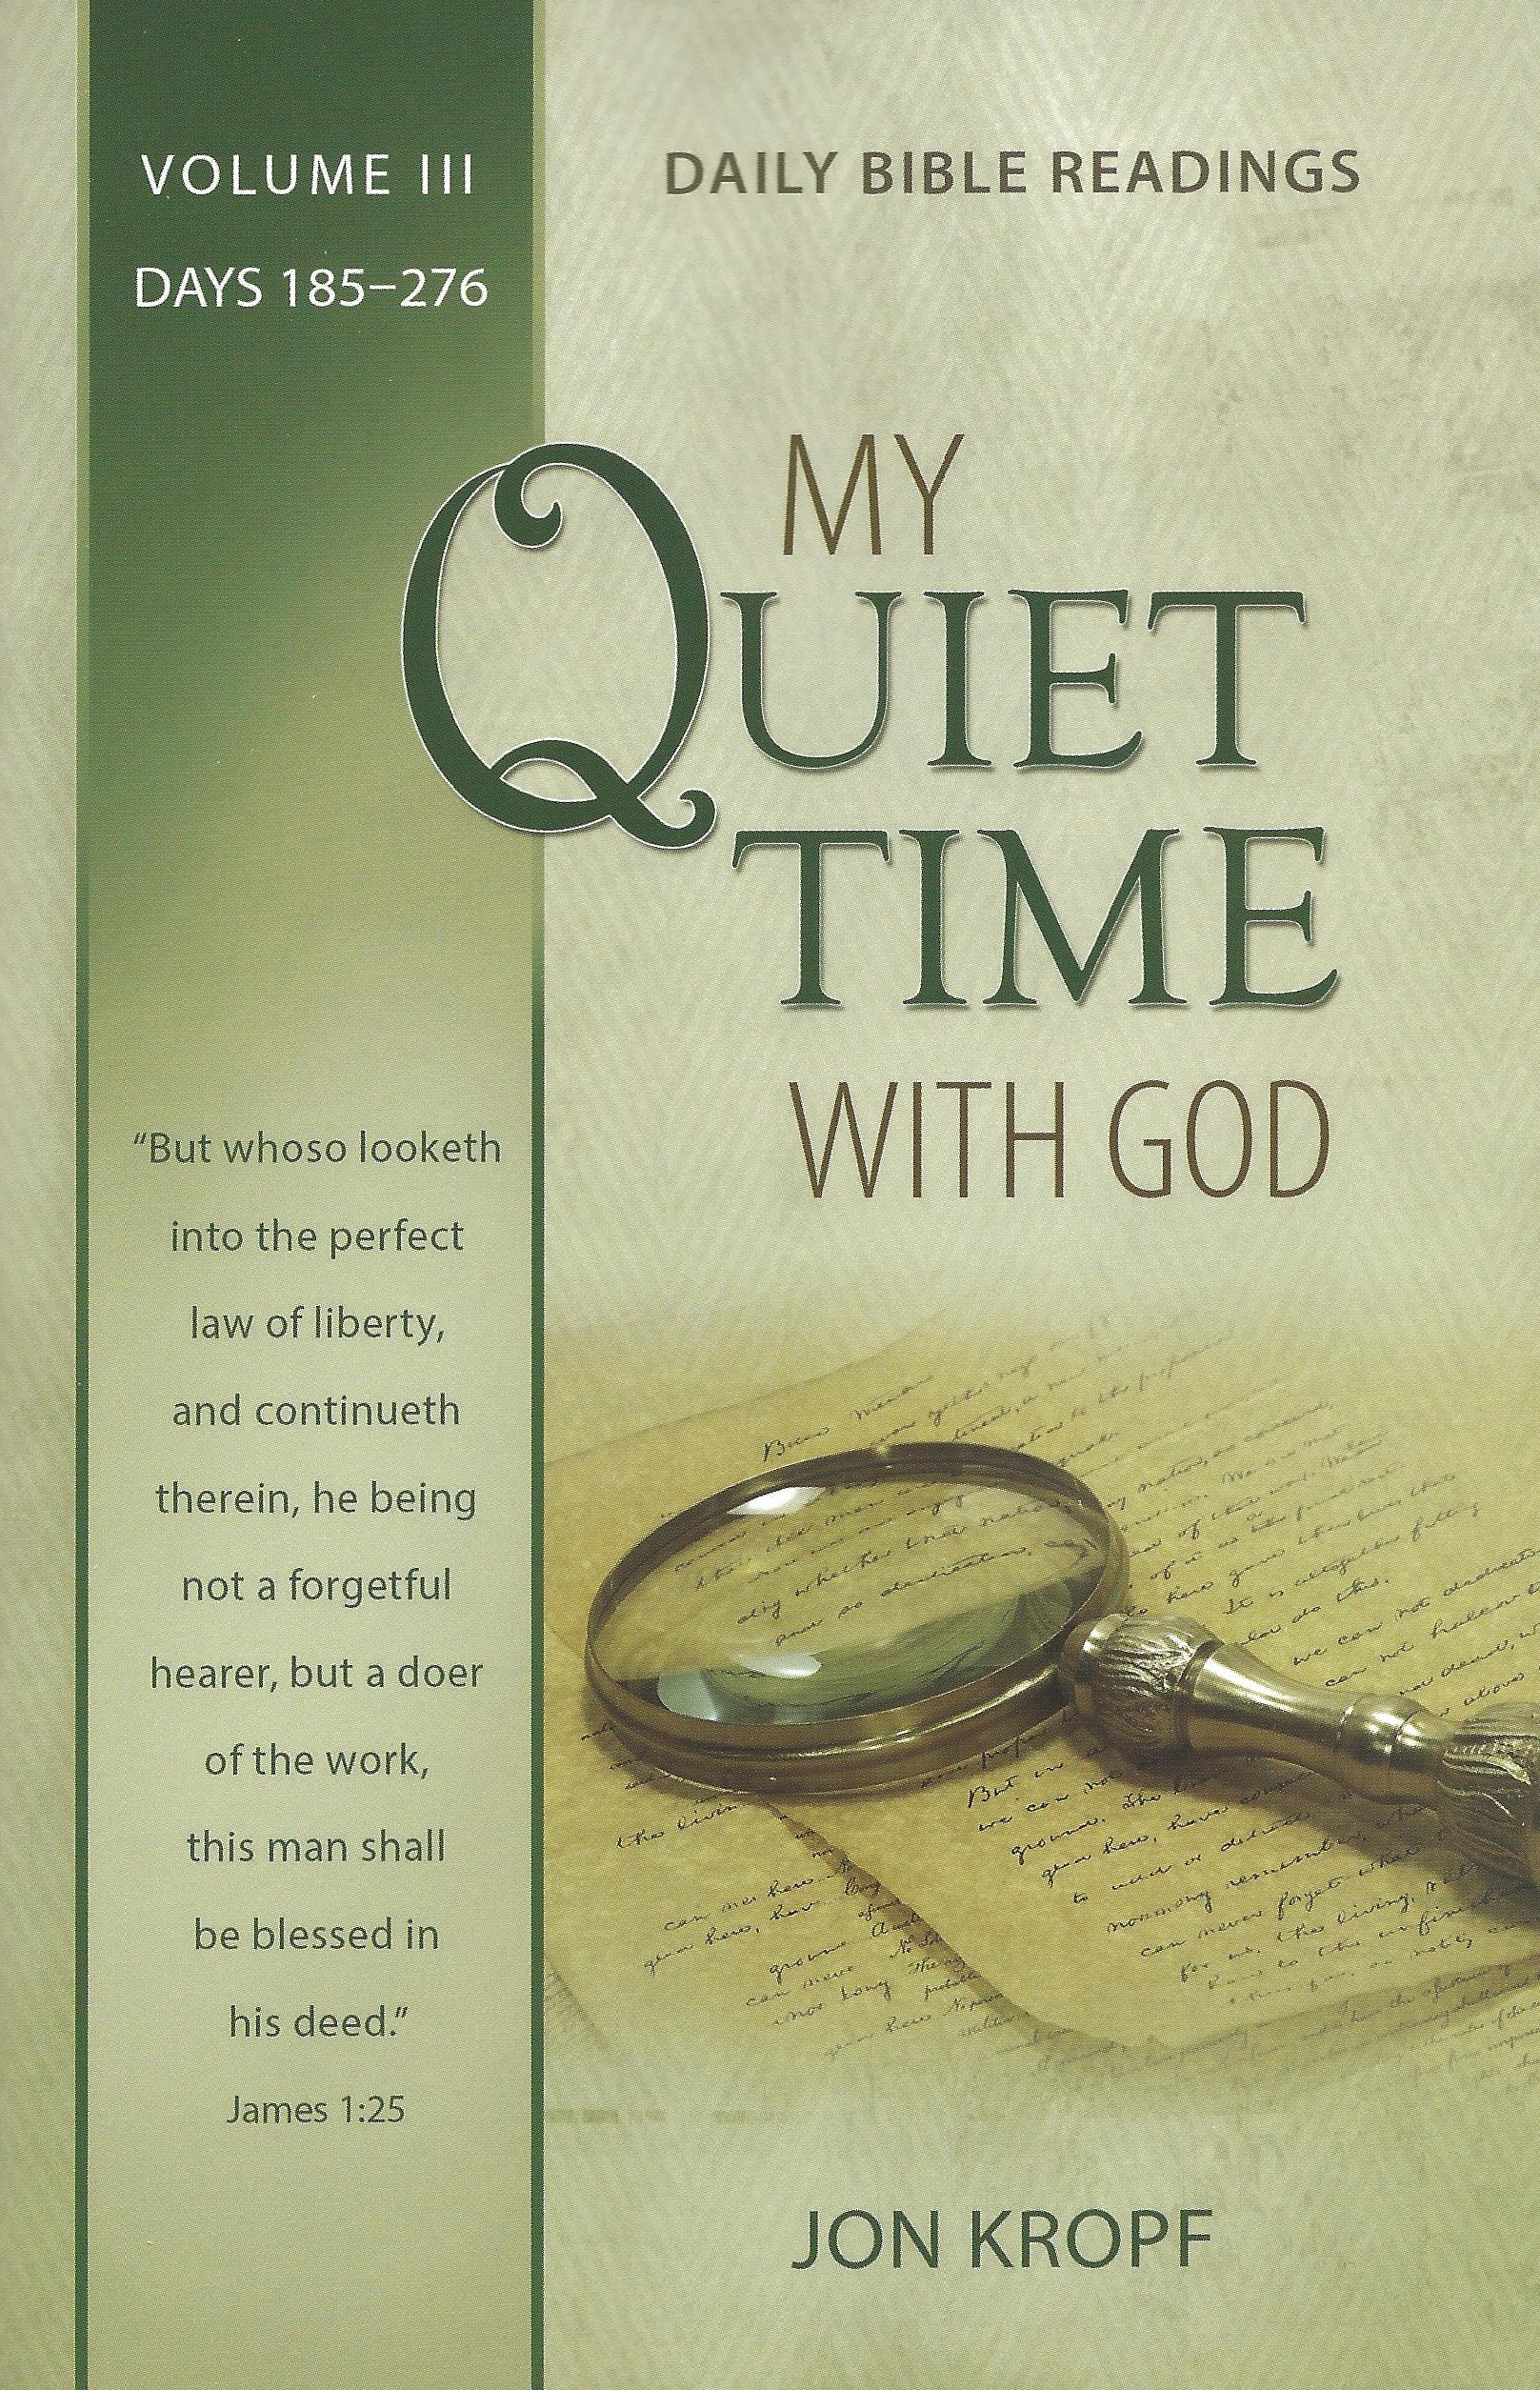 MY QUIET TIME WITH GOD VOL. III Jon Kropf